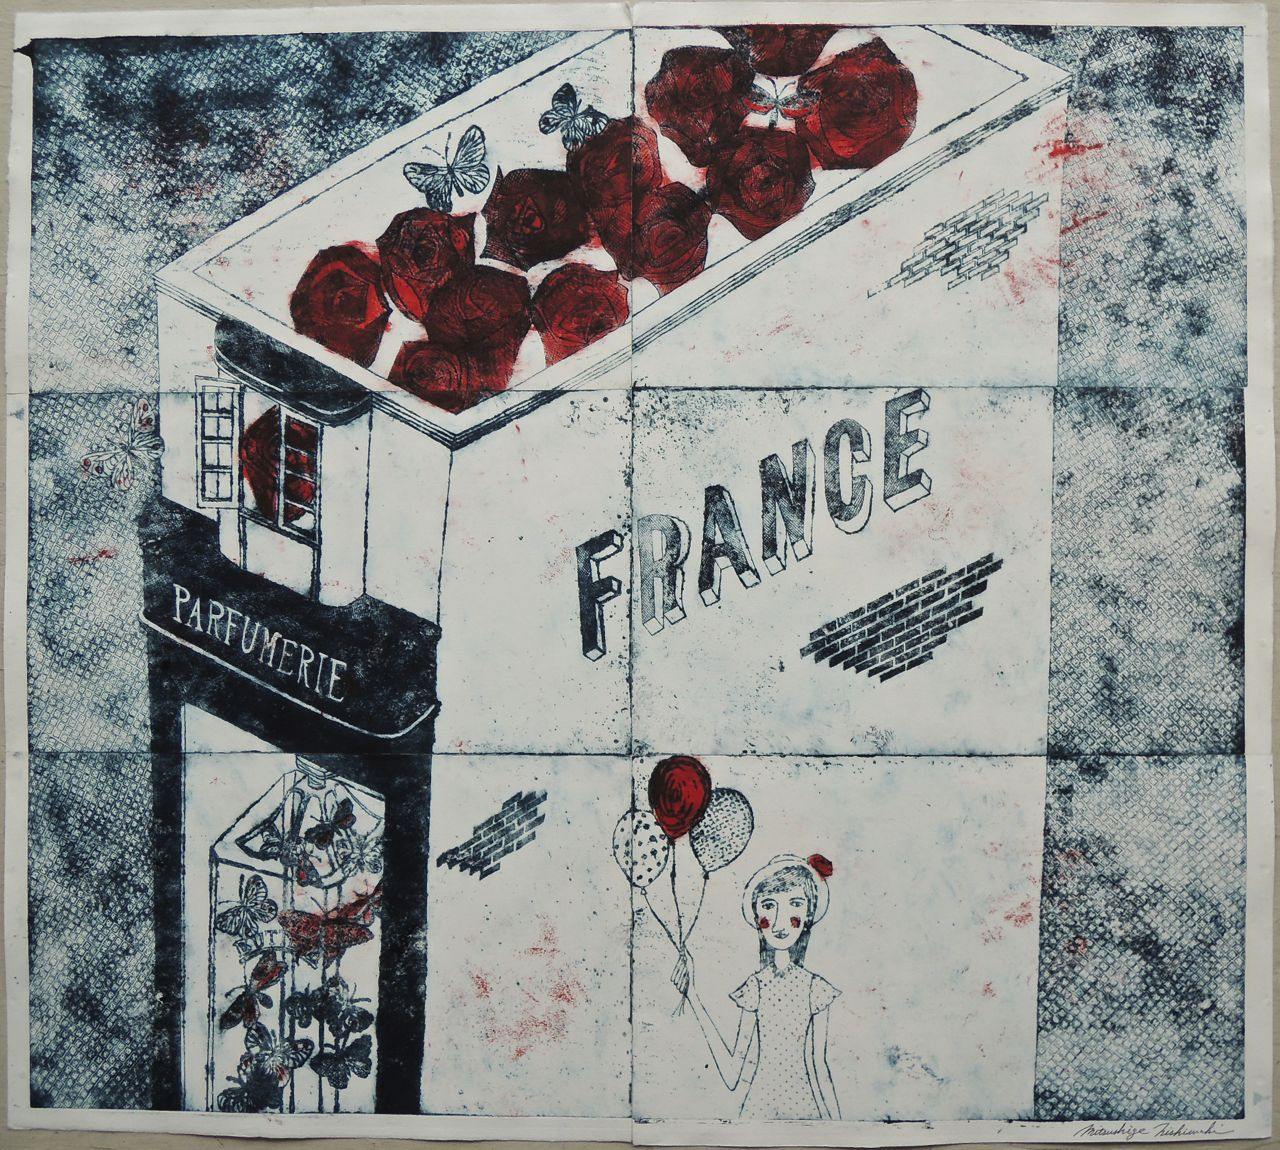 "Artist: Mitsushige Nishiwaki  Name: FRANCE Parfumerie  Size: 33.75""x30""  Price:  Inquire   Method: etching  Condition: signed print"